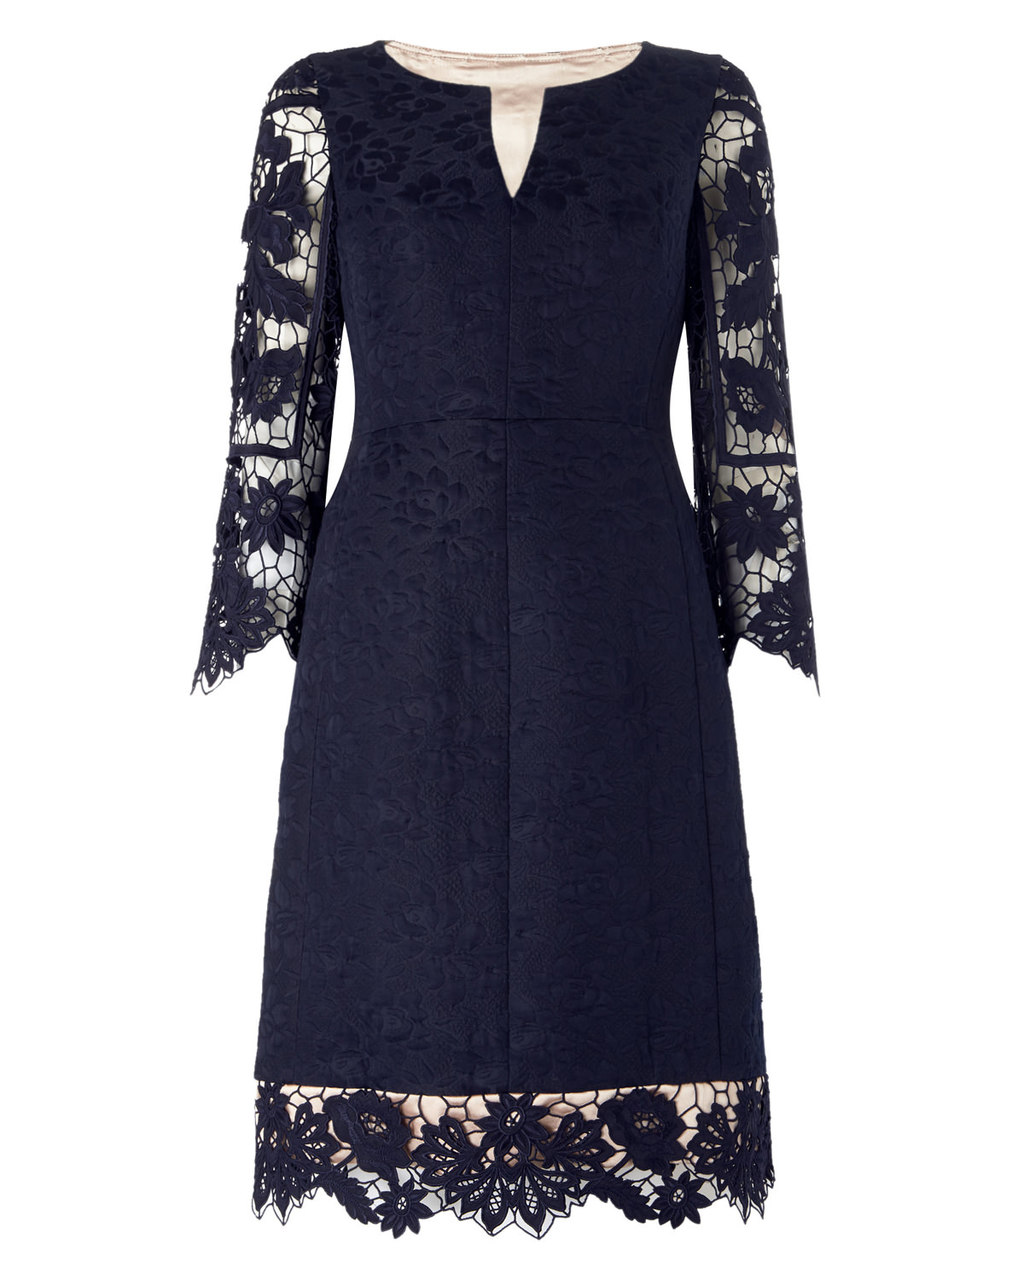 Dress Nine - style: shift; neckline: v-neck; fit: tailored/fitted; predominant colour: navy; length: on the knee; fibres: polyester/polyamide - 100%; occasions: occasion; sleeve length: 3/4 length; sleeve style: standard; texture group: lace; pattern type: fabric; pattern: patterned/print; embellishment: lace; season: s/s 2016